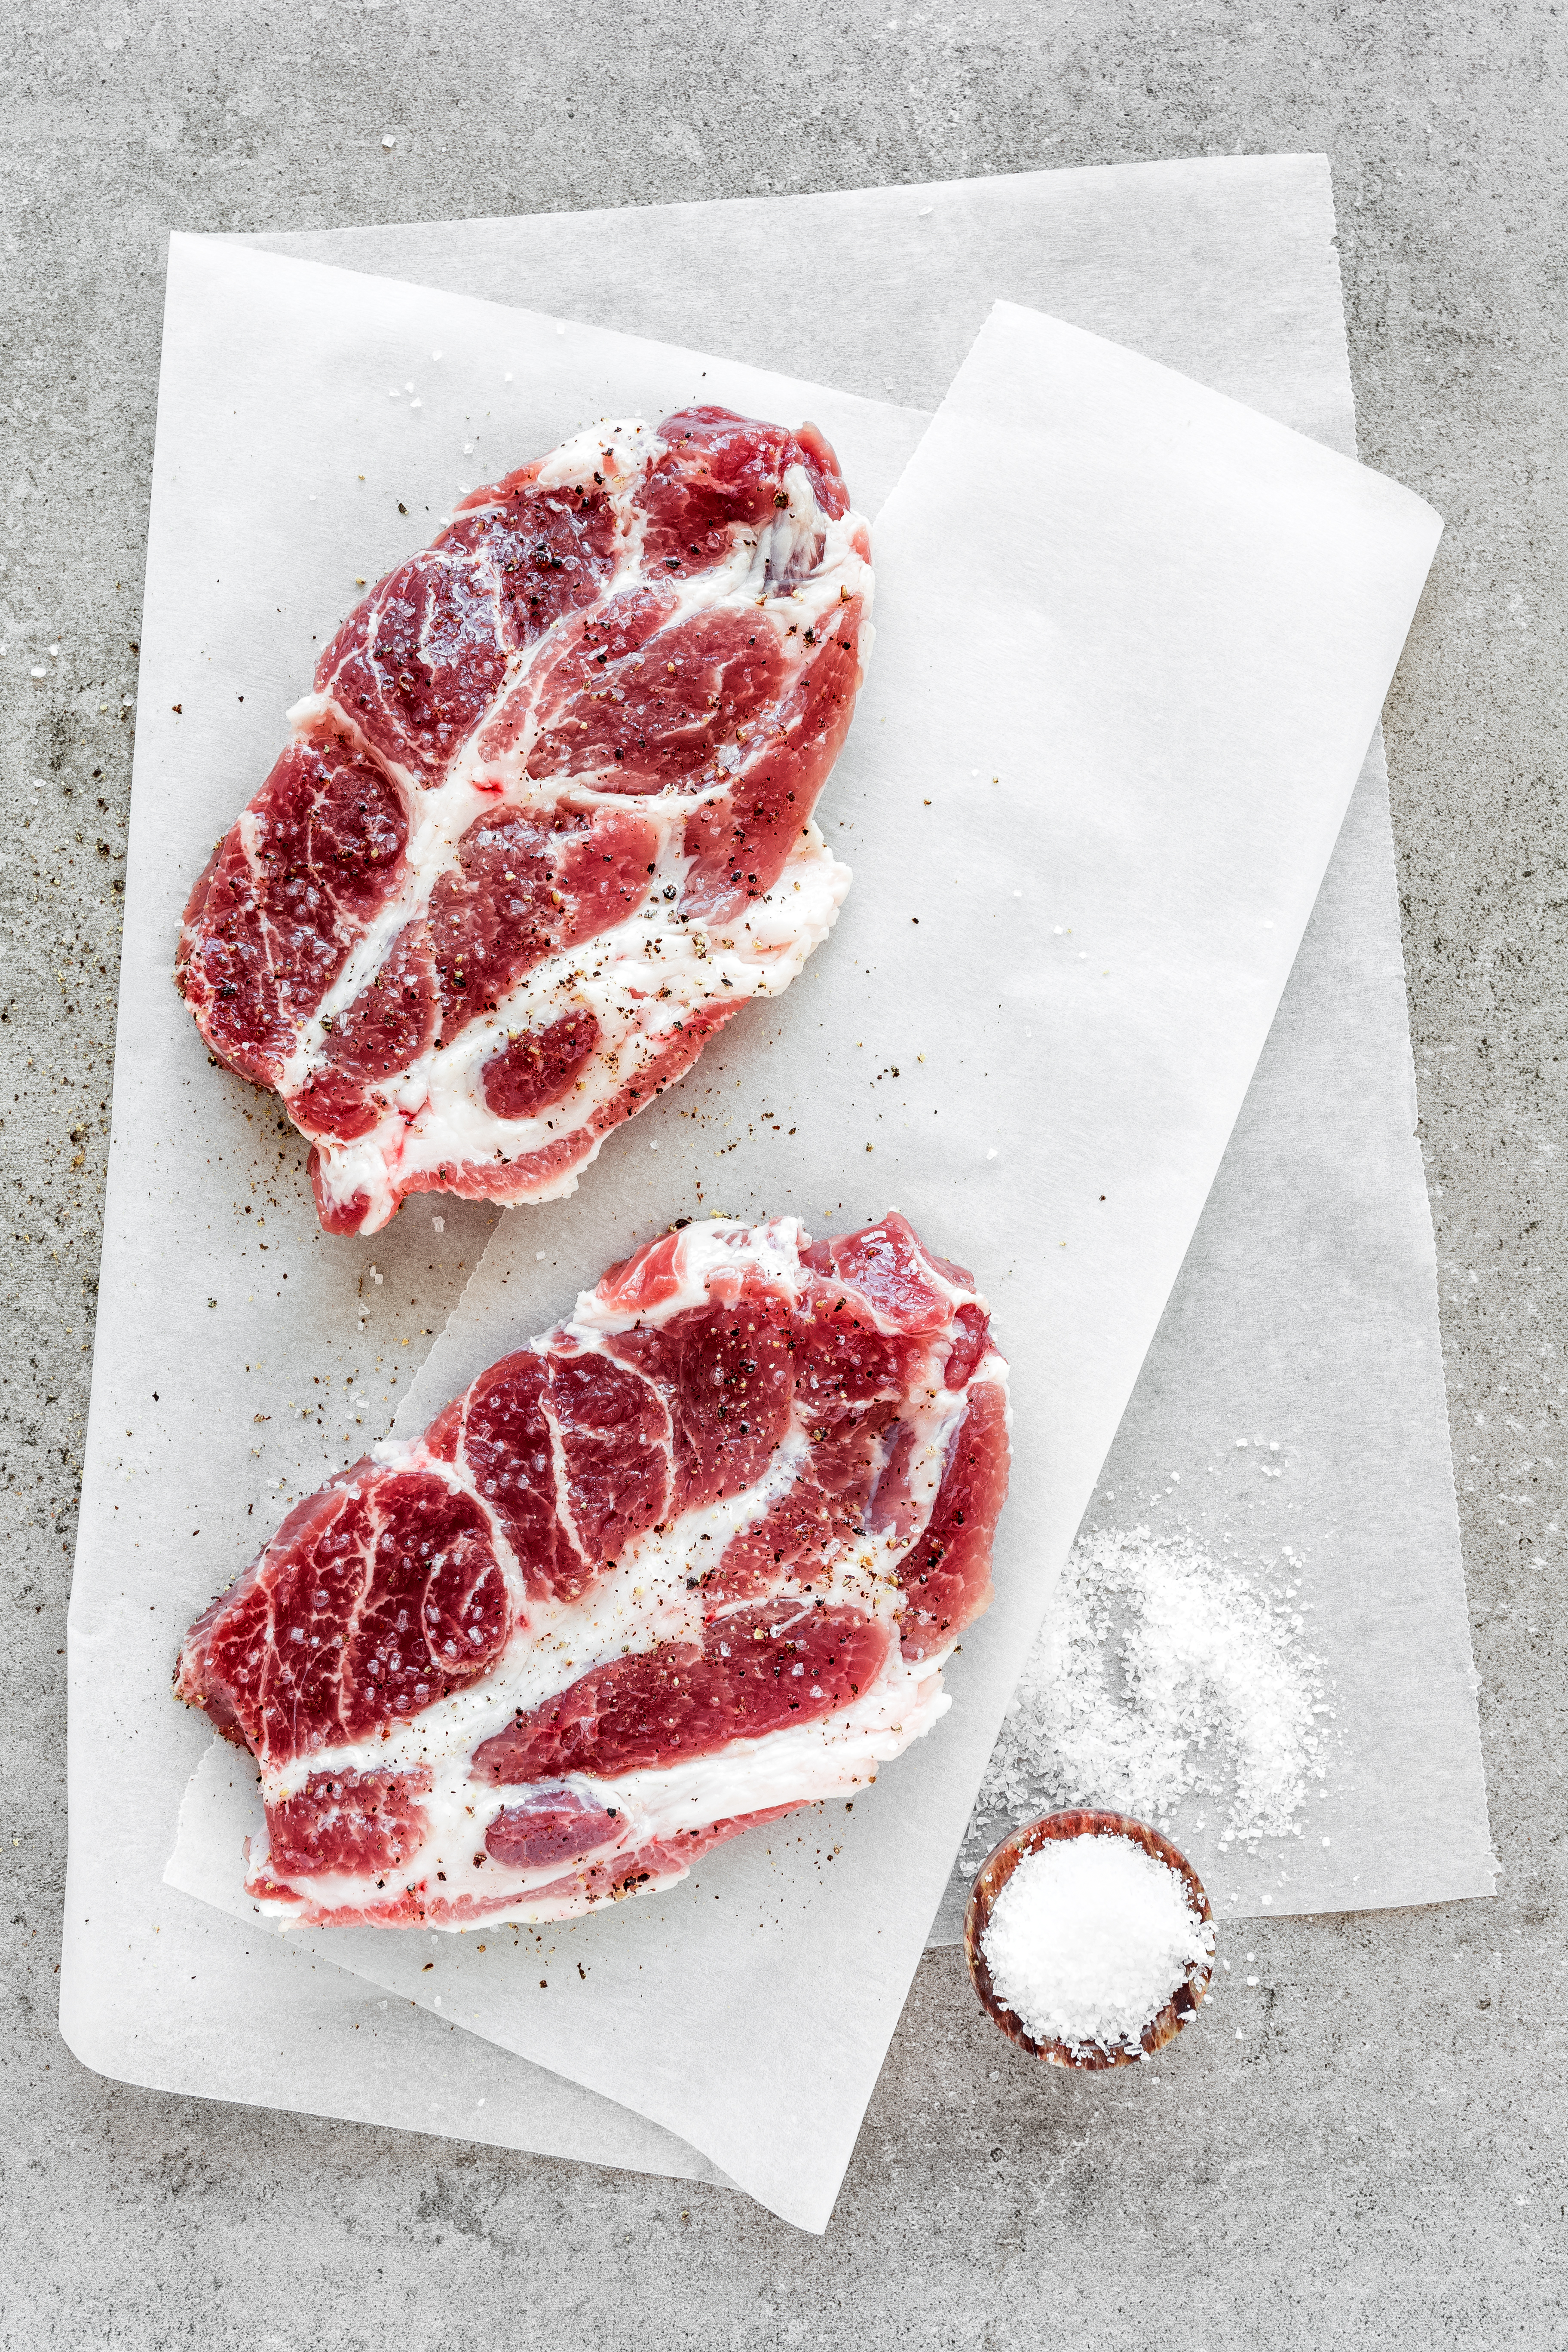 Raw meat steaks on stone background, top view